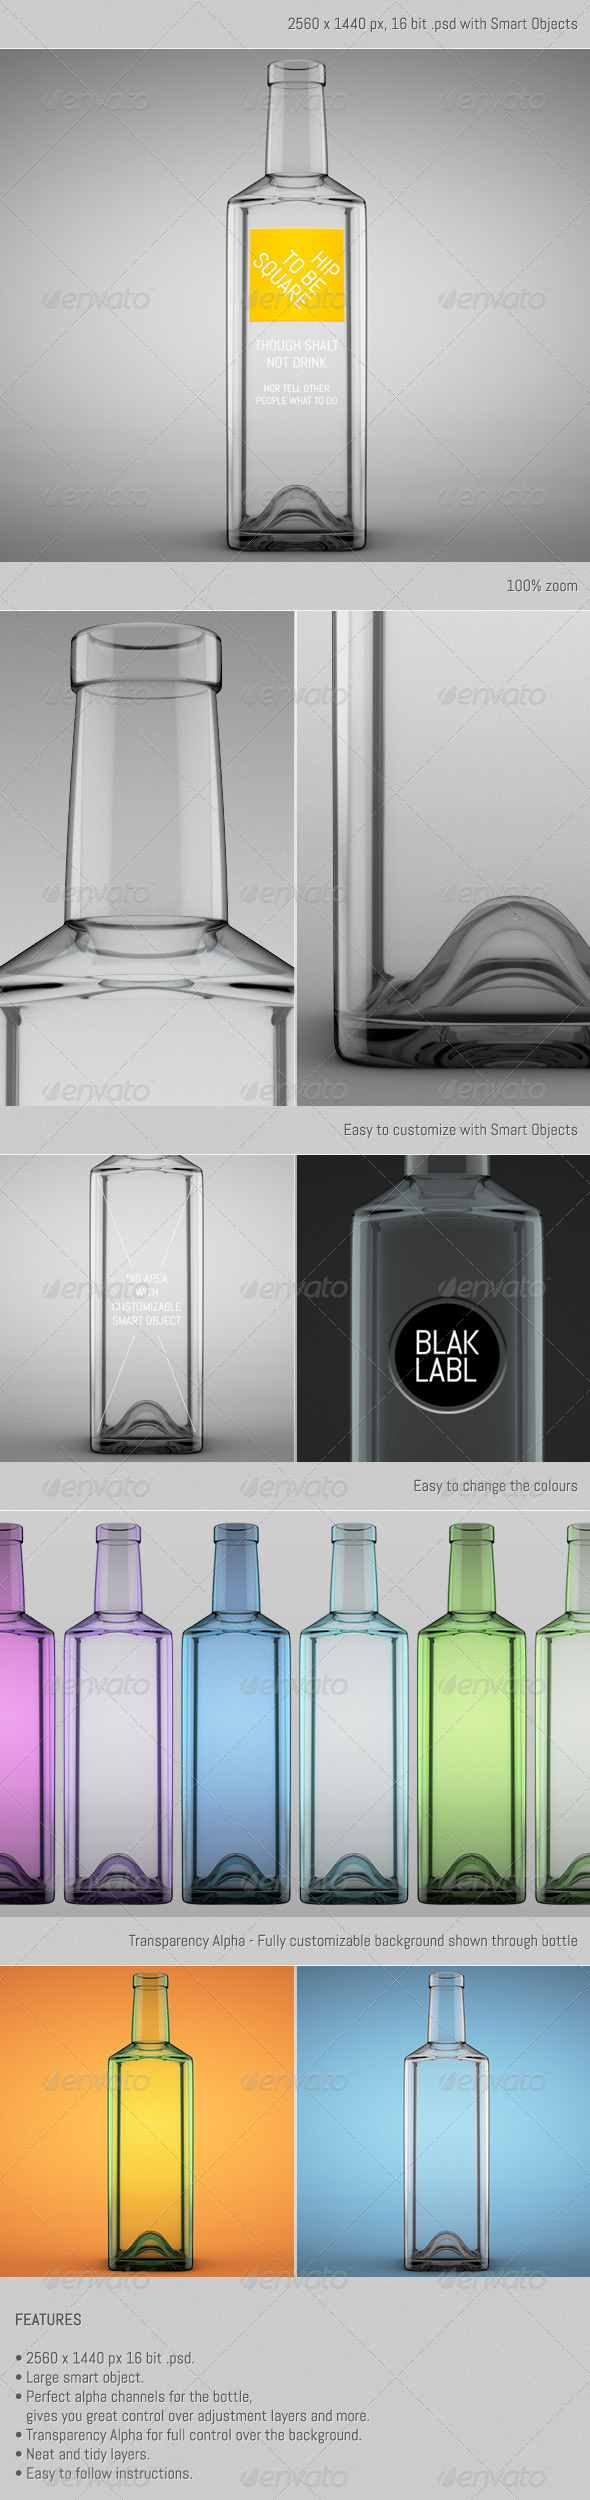 Square Bottle - Objects 3D Renders